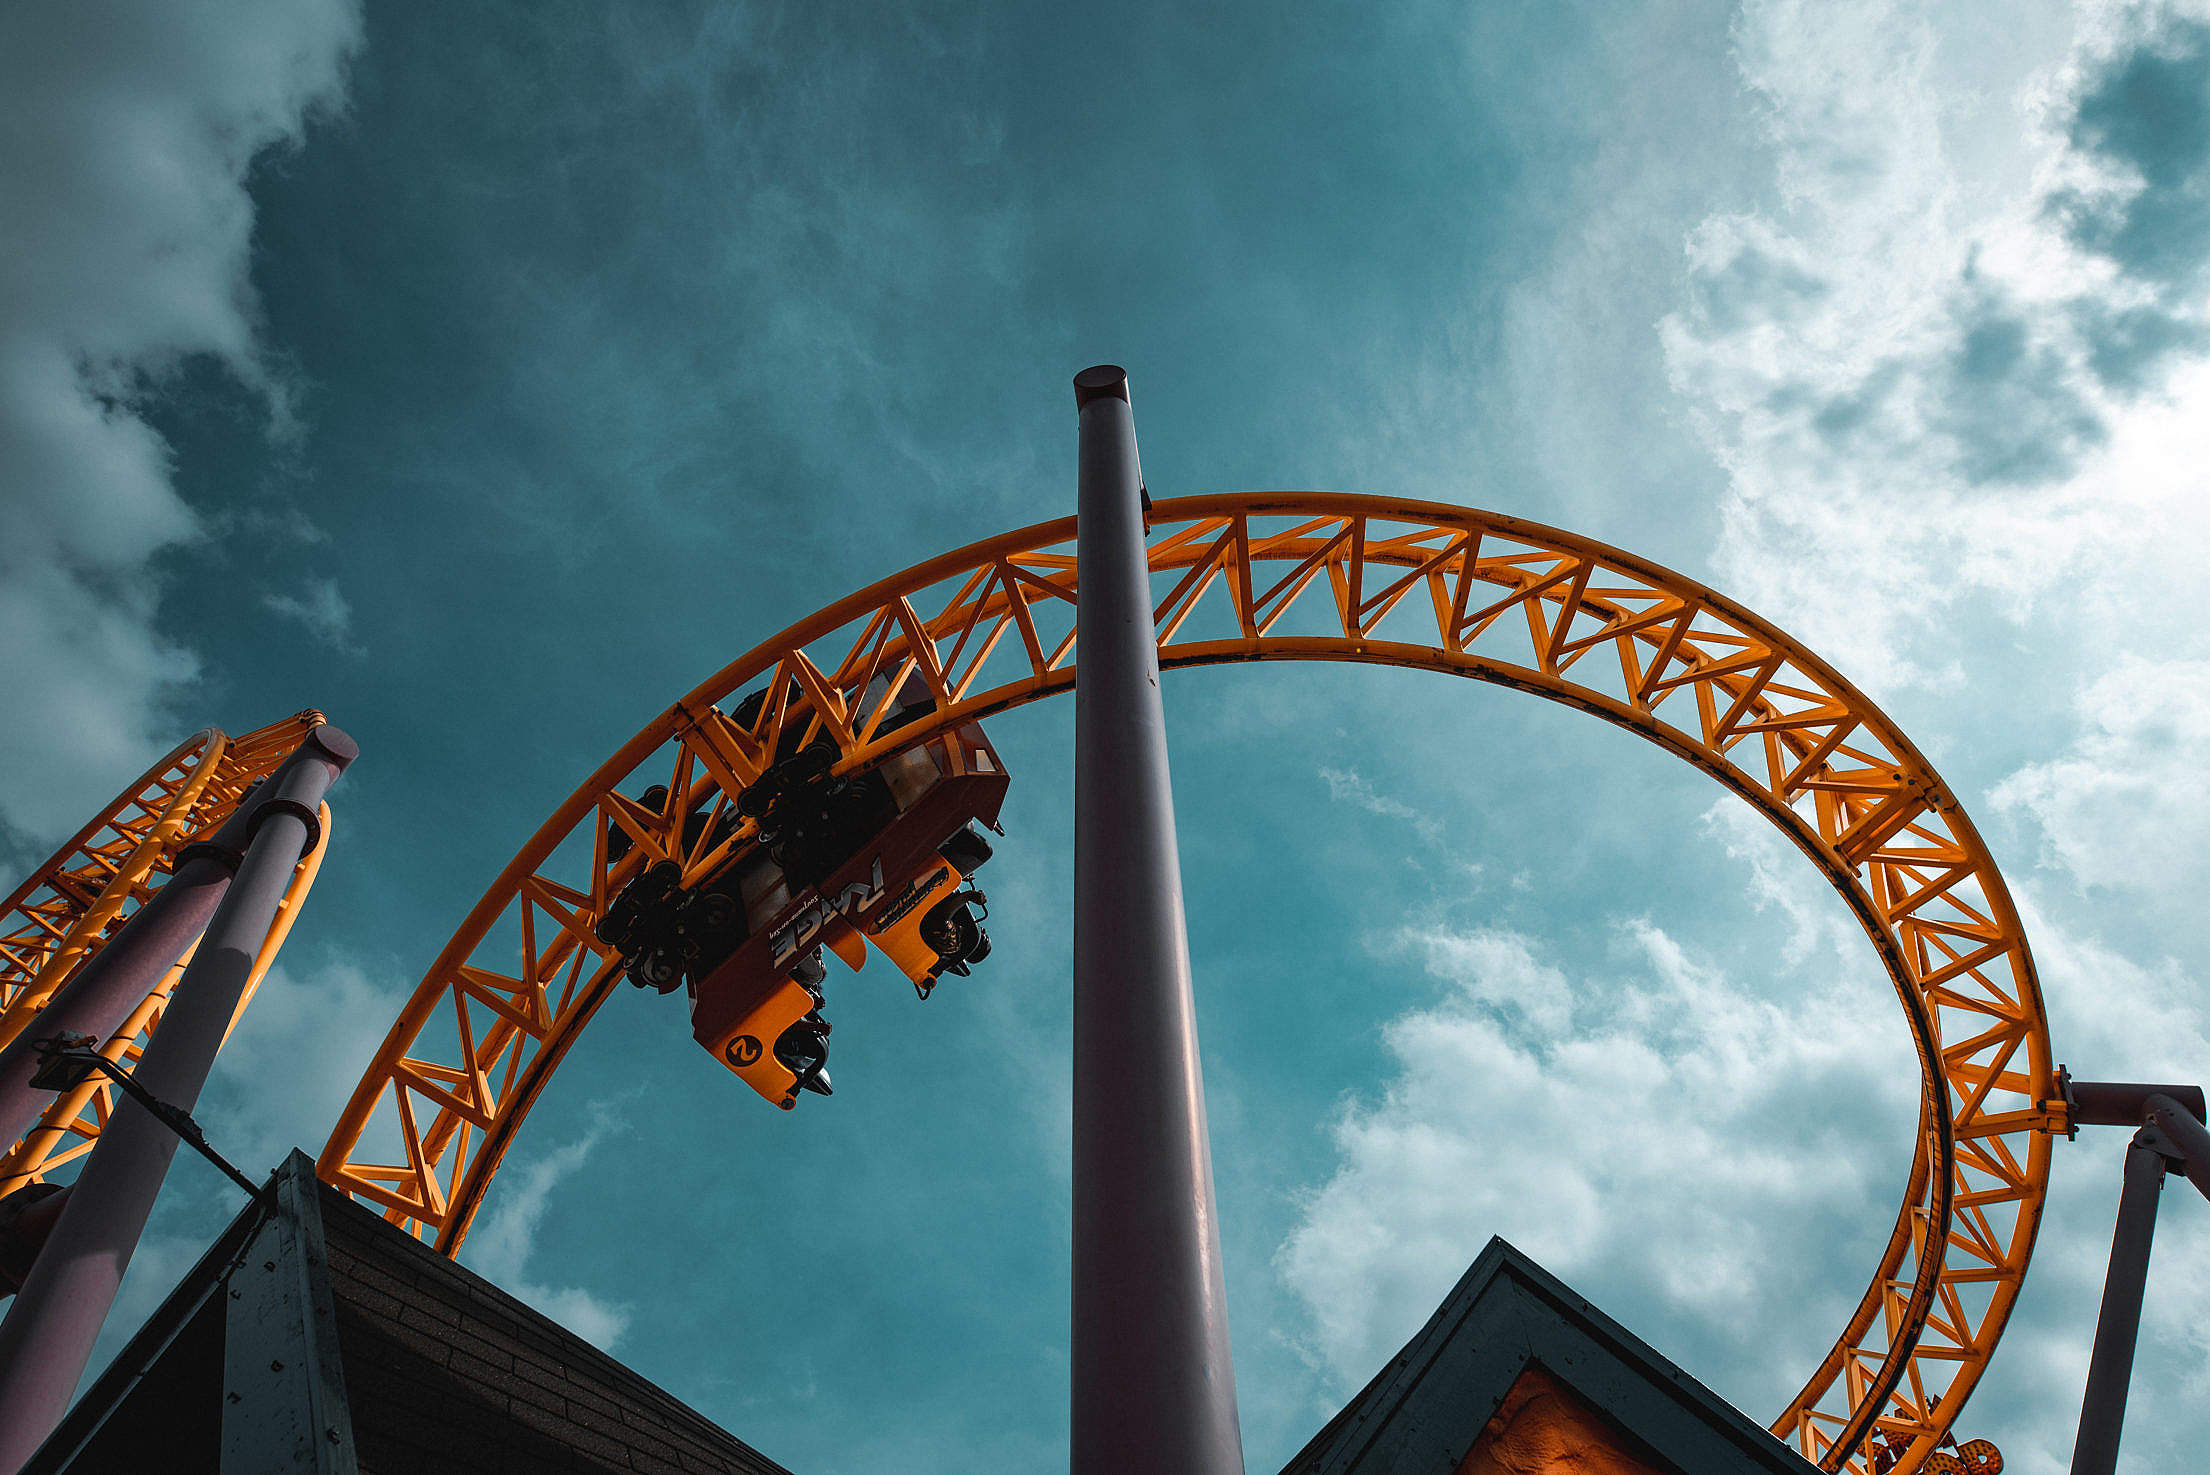 Exciting Rollercoaster in The Sky Free Stock Photo